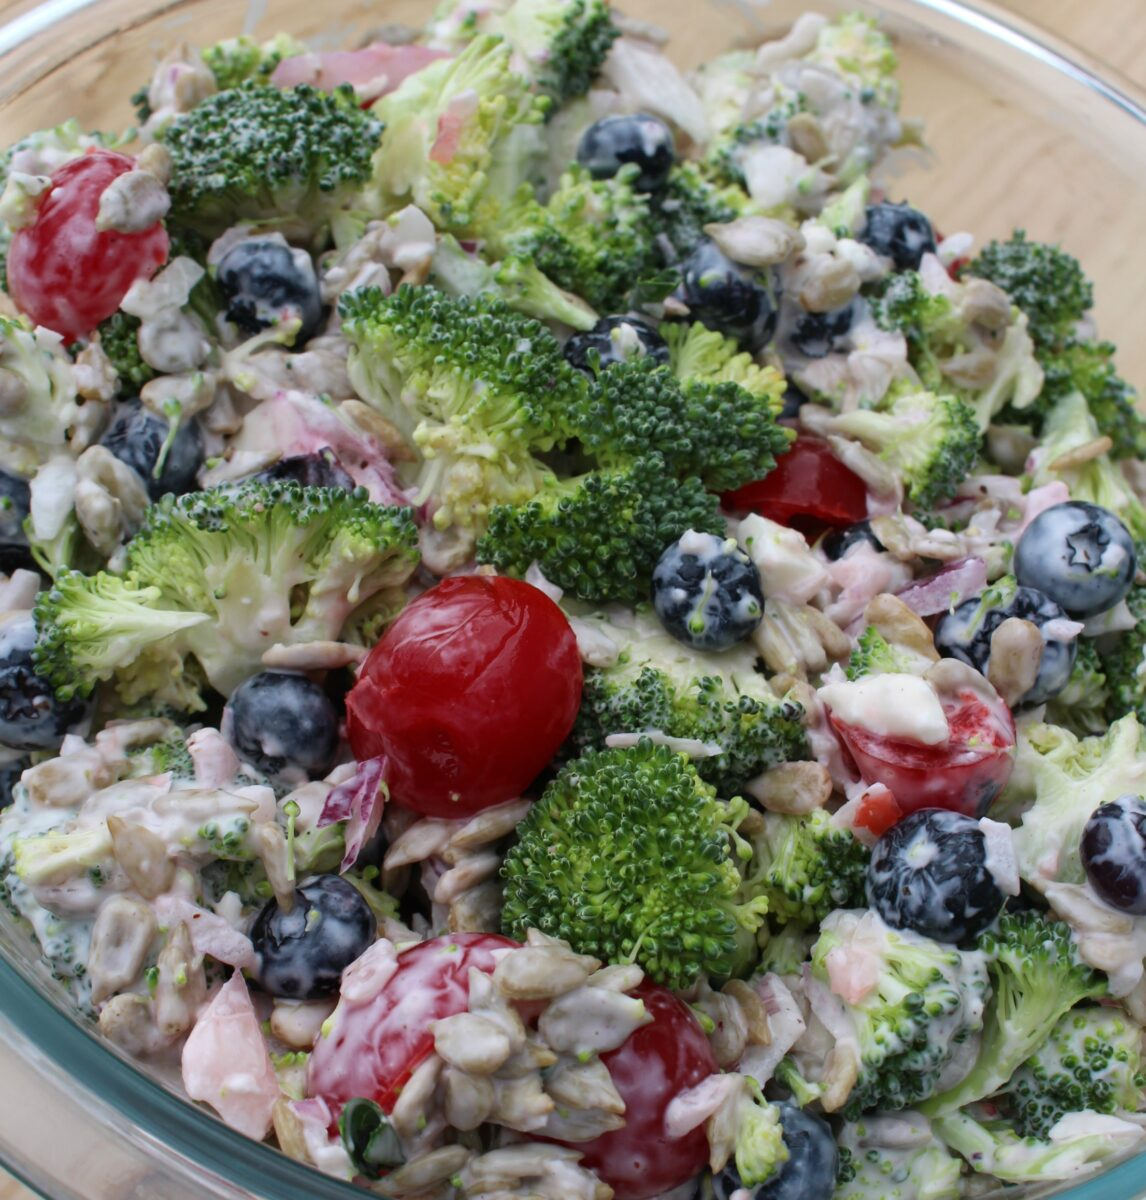 Broccoli and Cherry Salad